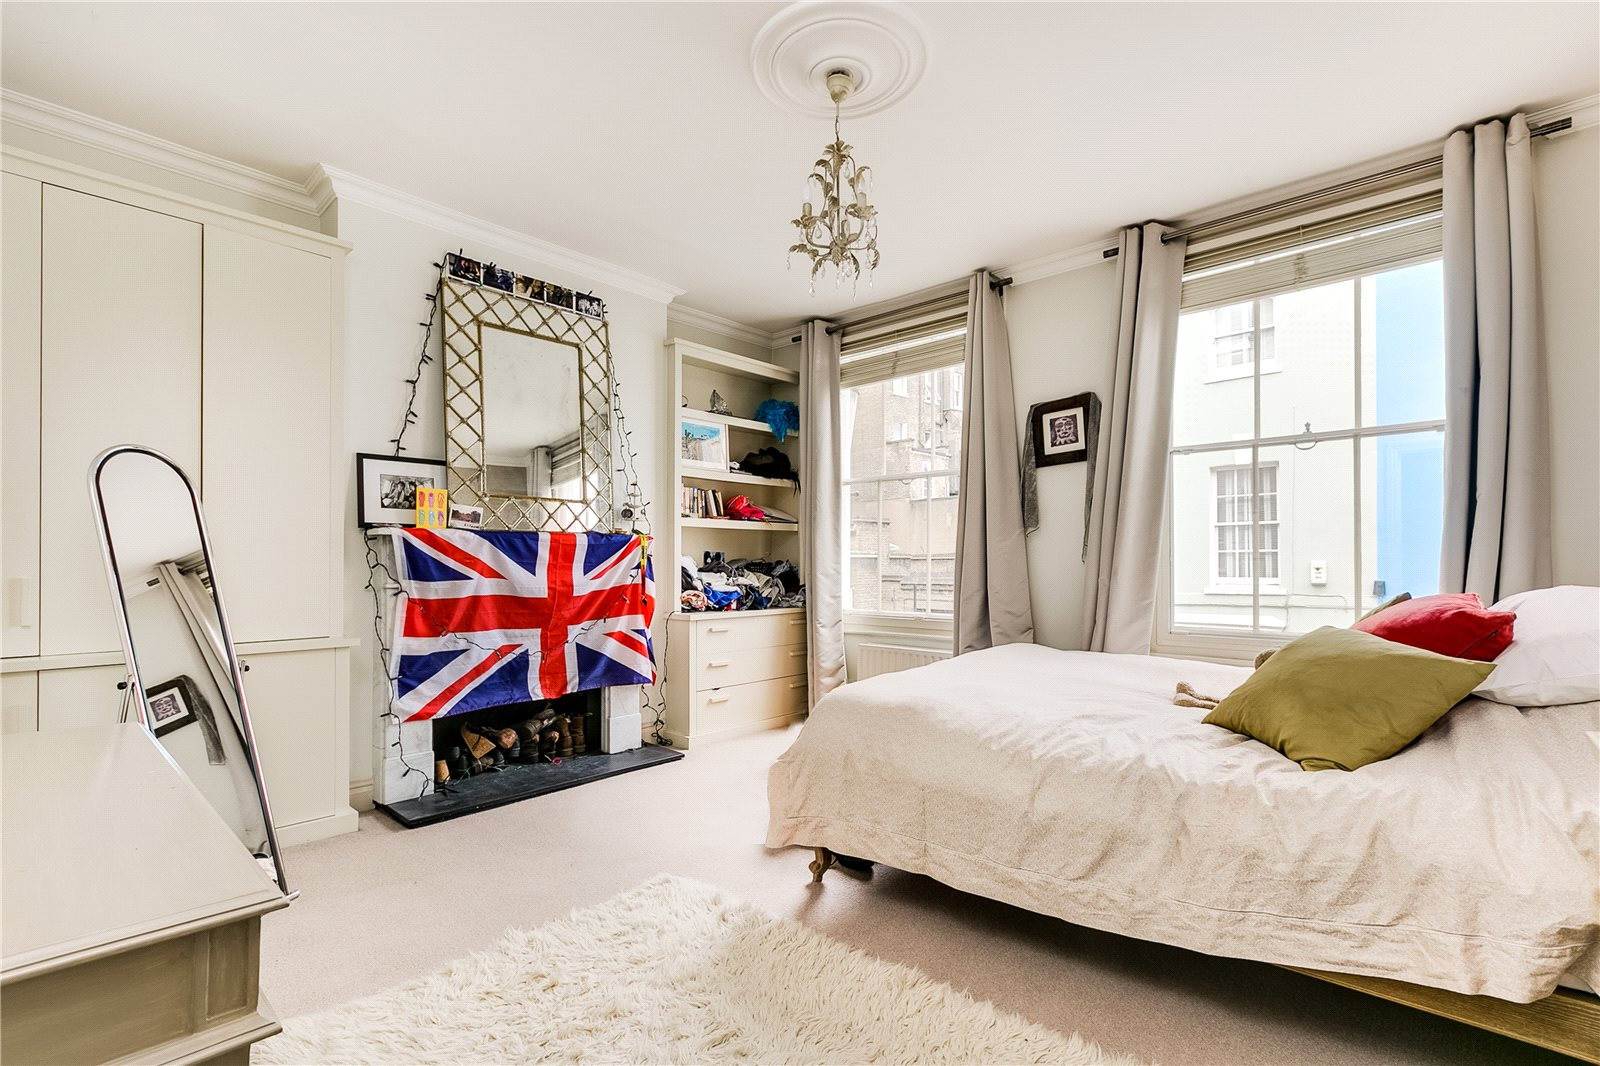 3 bedroom mews for sale in child 39 s place earls court sw5 for Kitchen 482 kensington